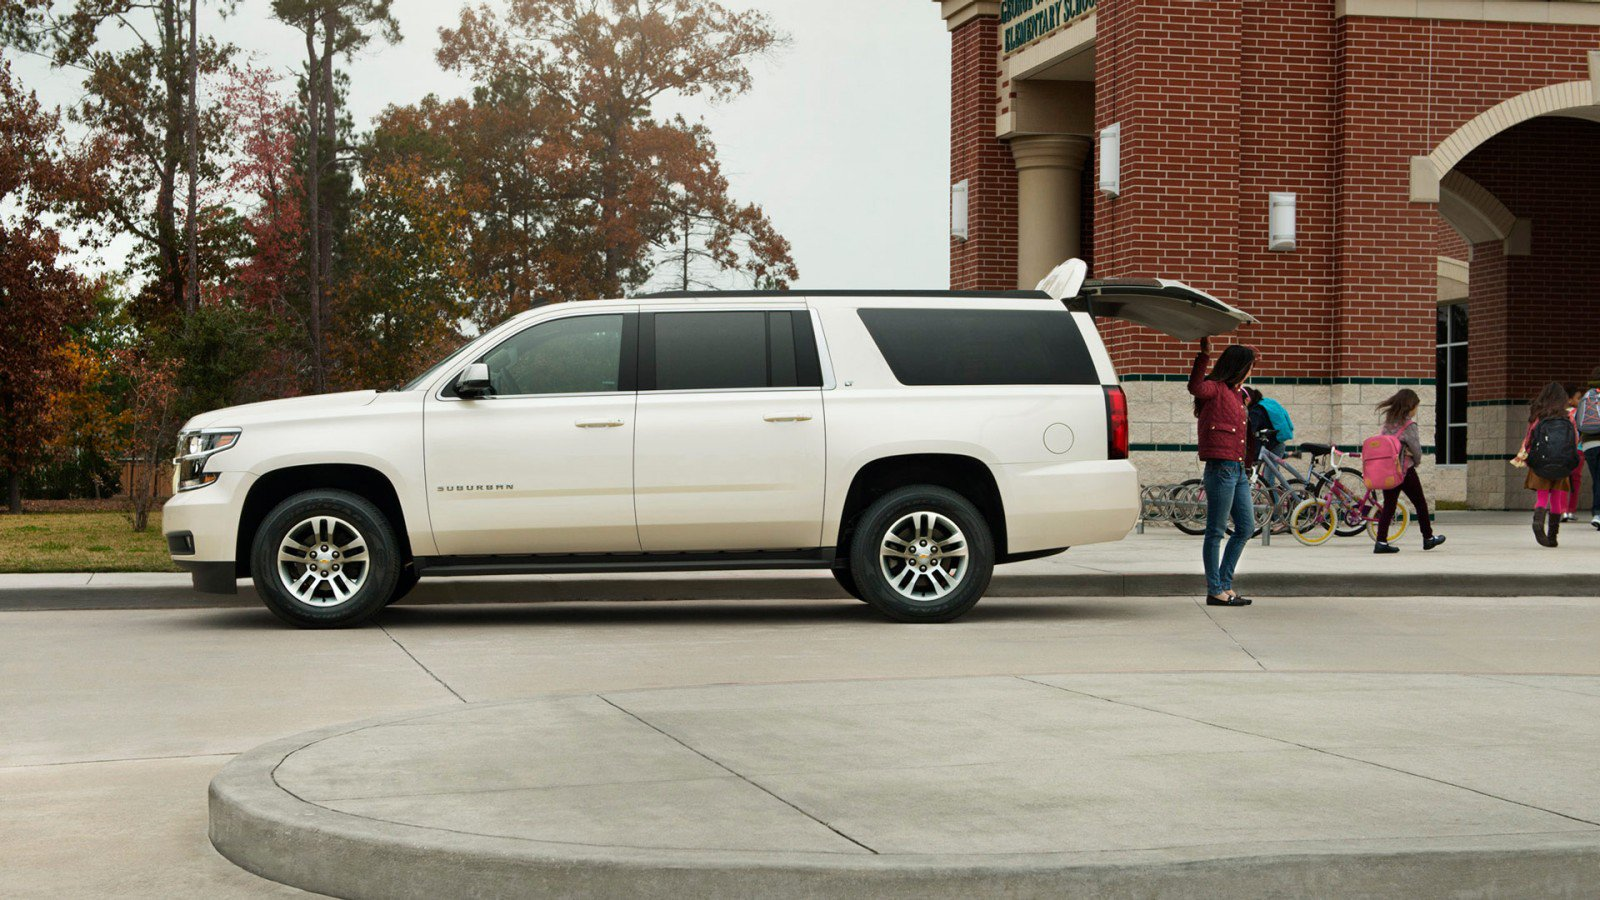 2016 chevrolet suburban vs 2015 chevrolet suburban. Black Bedroom Furniture Sets. Home Design Ideas